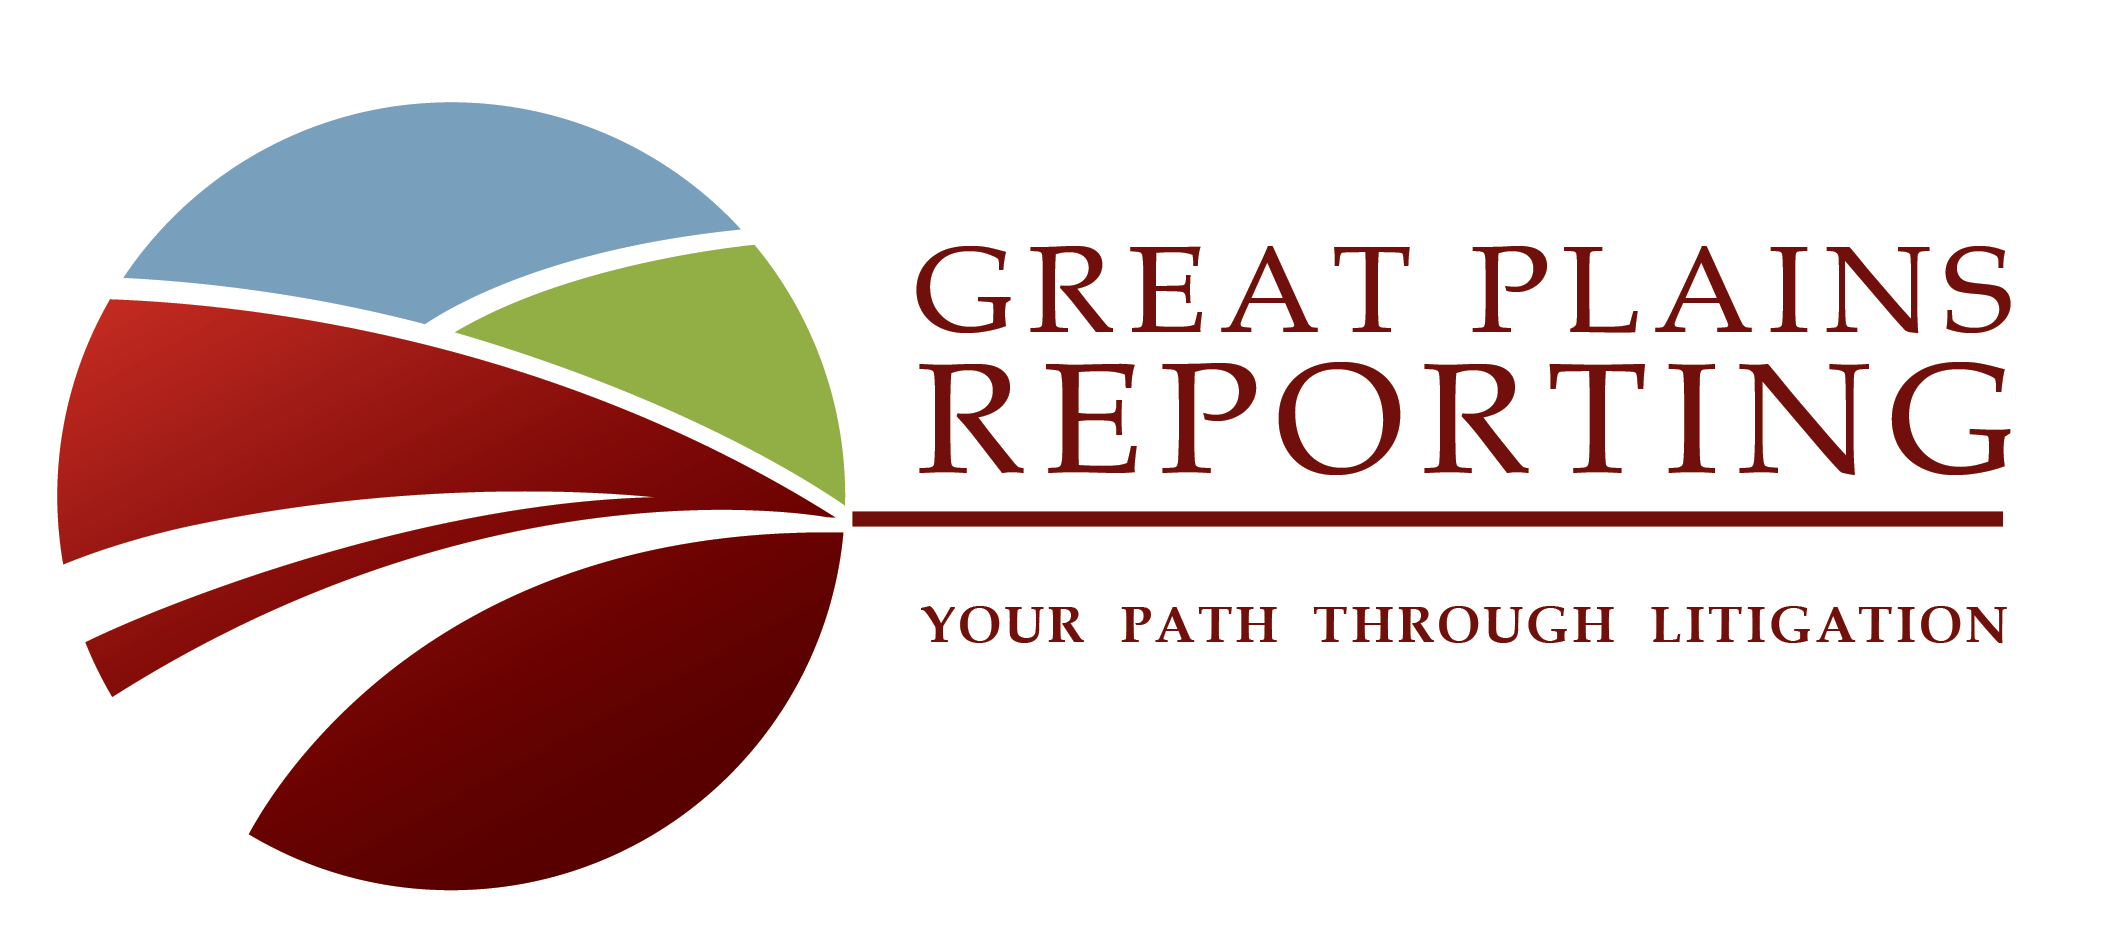 Great Plains Reporting Company Logo